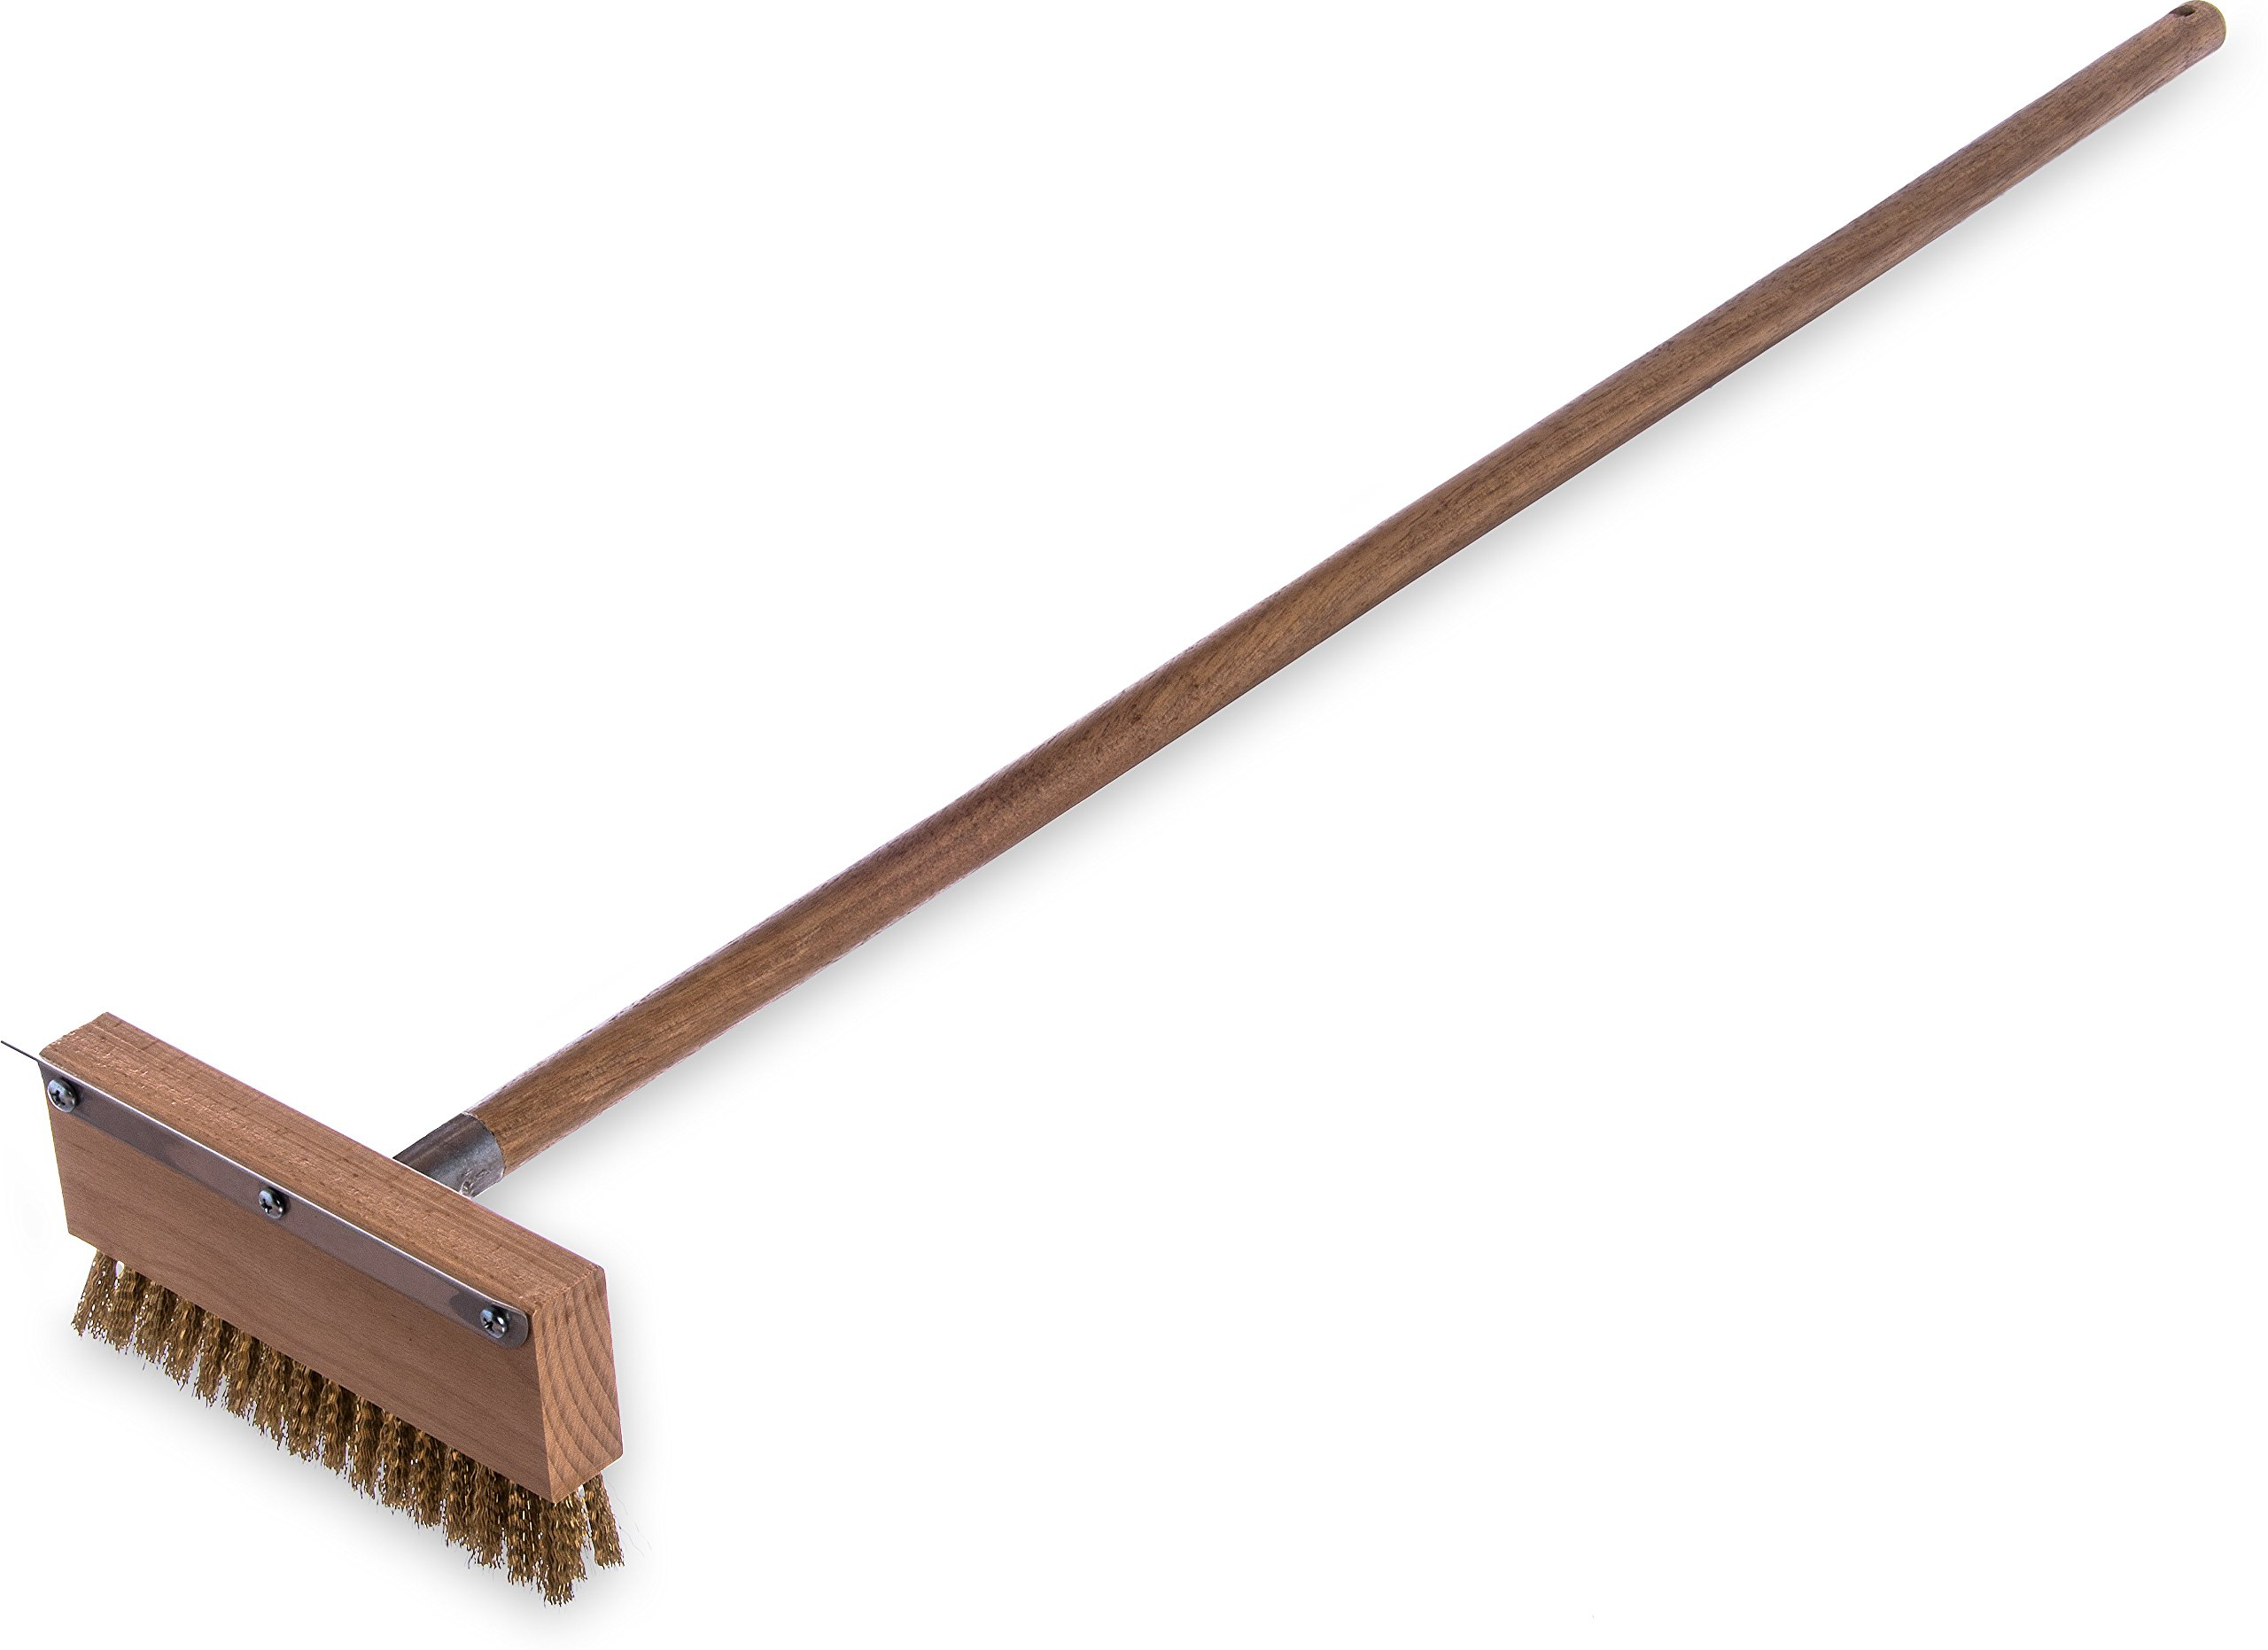 Carlisle 4152000 Oven Brush & Scraper With Handle, 8-1/2'' Wide, 1-1/4'' Brass Bristles, 42'' Long Hardwood Handle